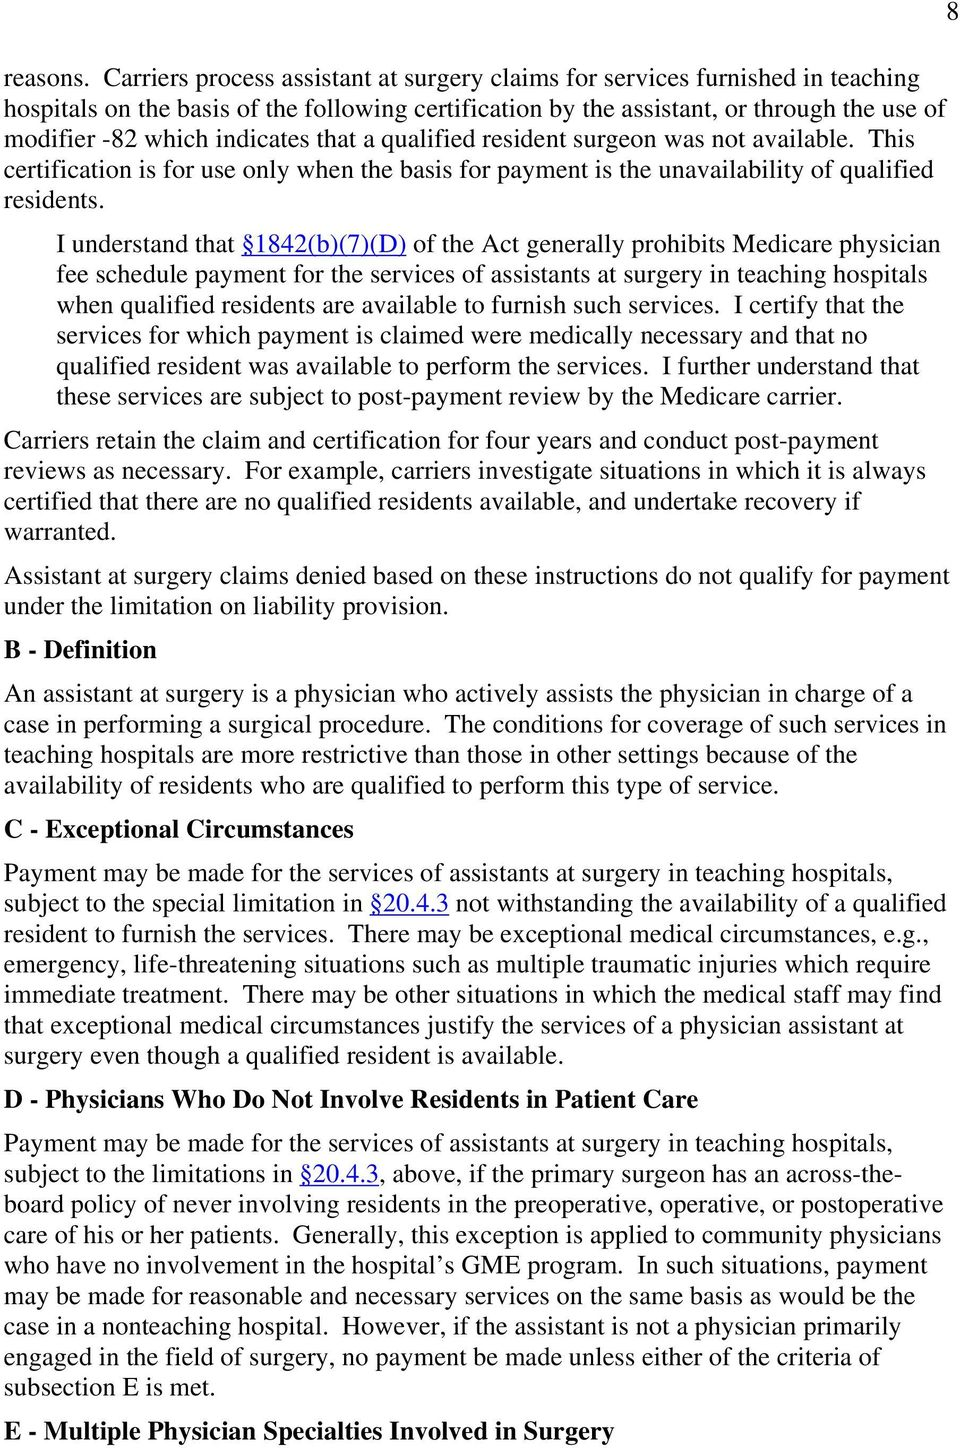 indicates that a qualified resident surgeon was not available. This certification is for use only when the basis for payment is the unavailability of qualified residents.